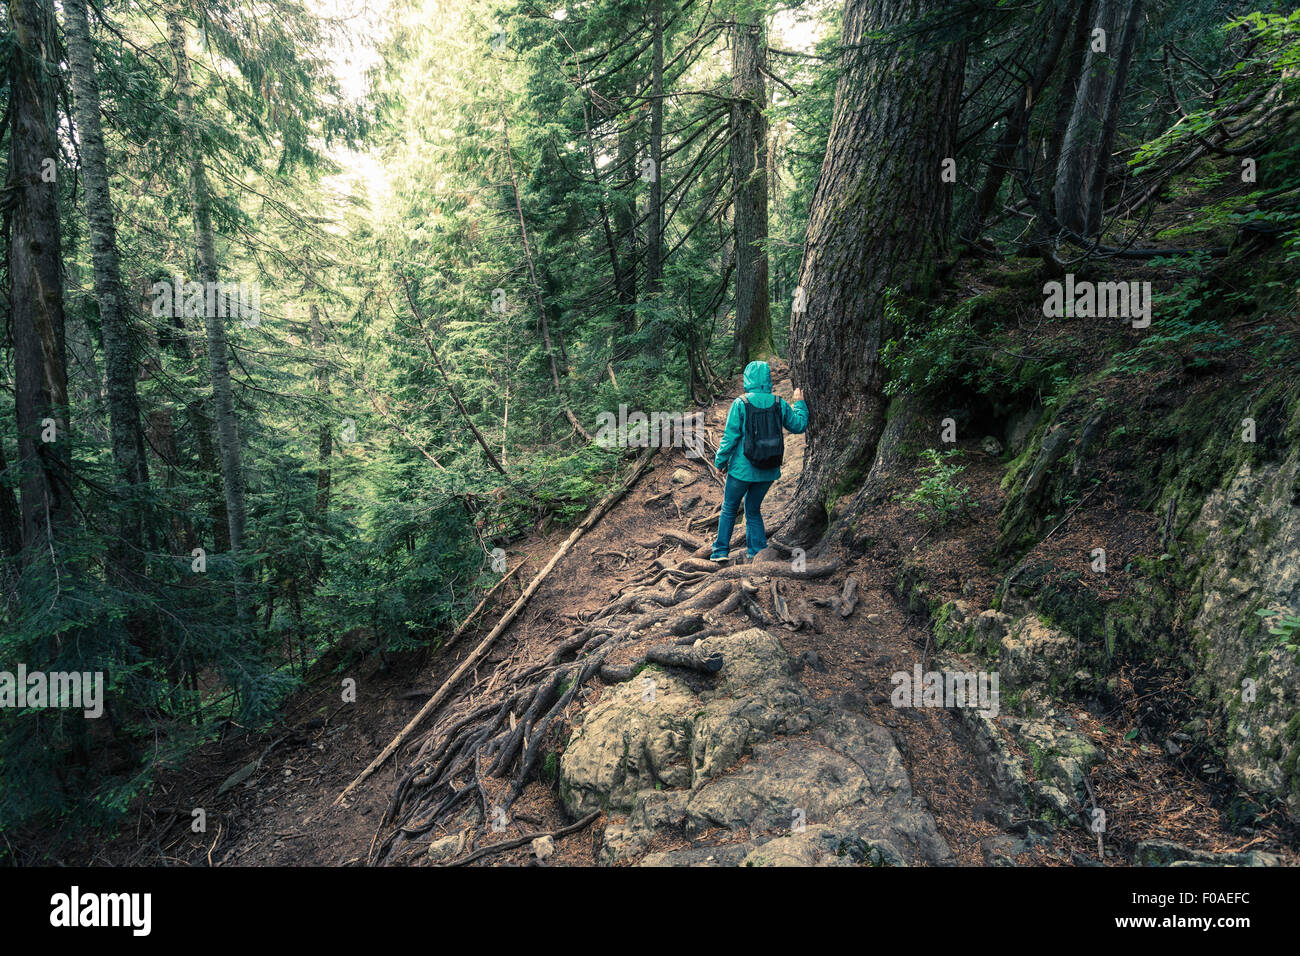 Vue arrière du female hiker en descente montagne raide Forest, British Columbia, Canada Photo Stock